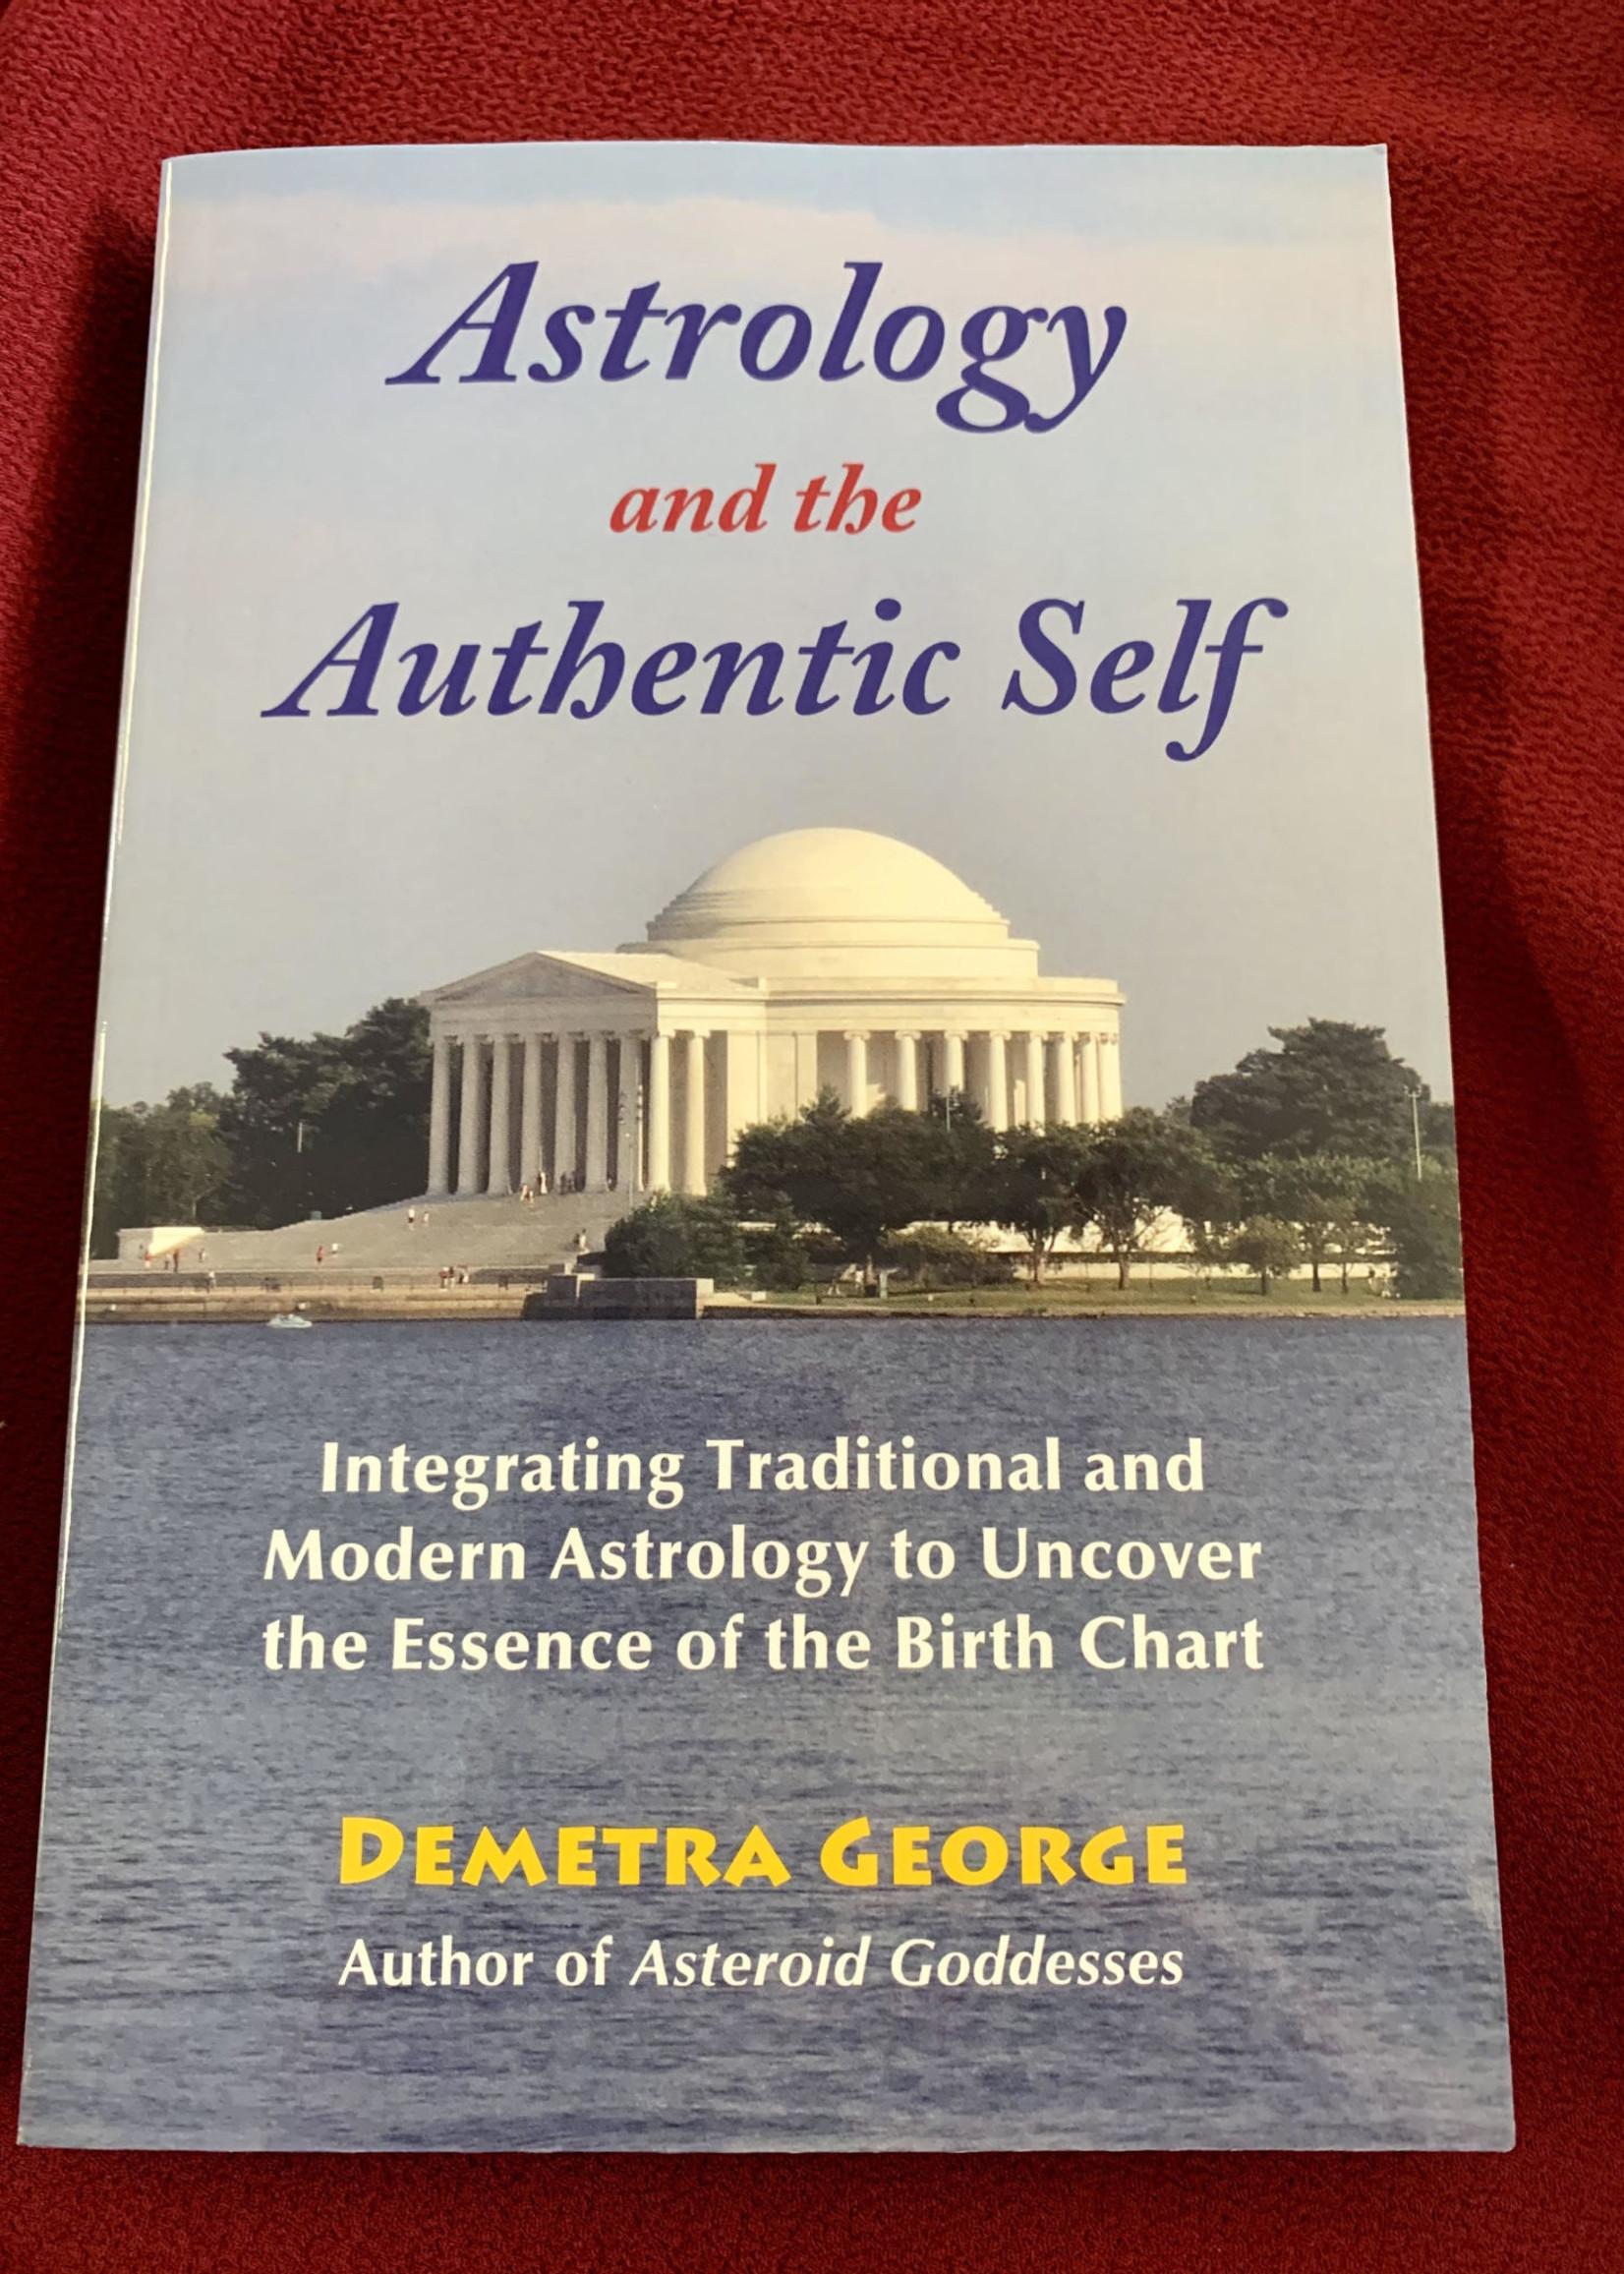 Astrology and the Authentic Self Integrating Traditional and Modern Astrology to Uncover the Essence of the Birth Chart - Demetra George